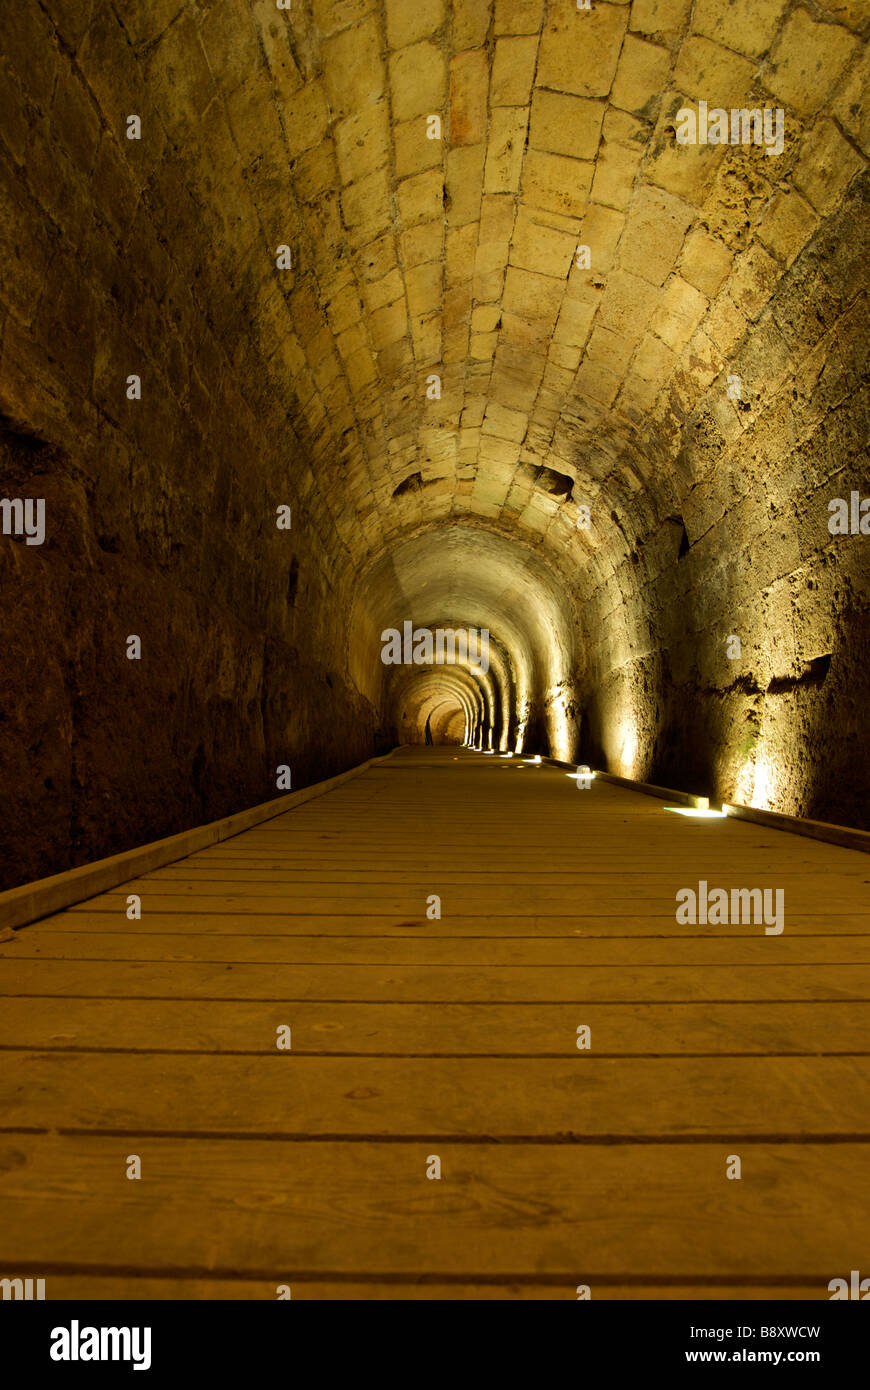 Stone masonry arch supported a secret underground Templar Knights tunnel in crusader fortress port city of Acre - Stock Image